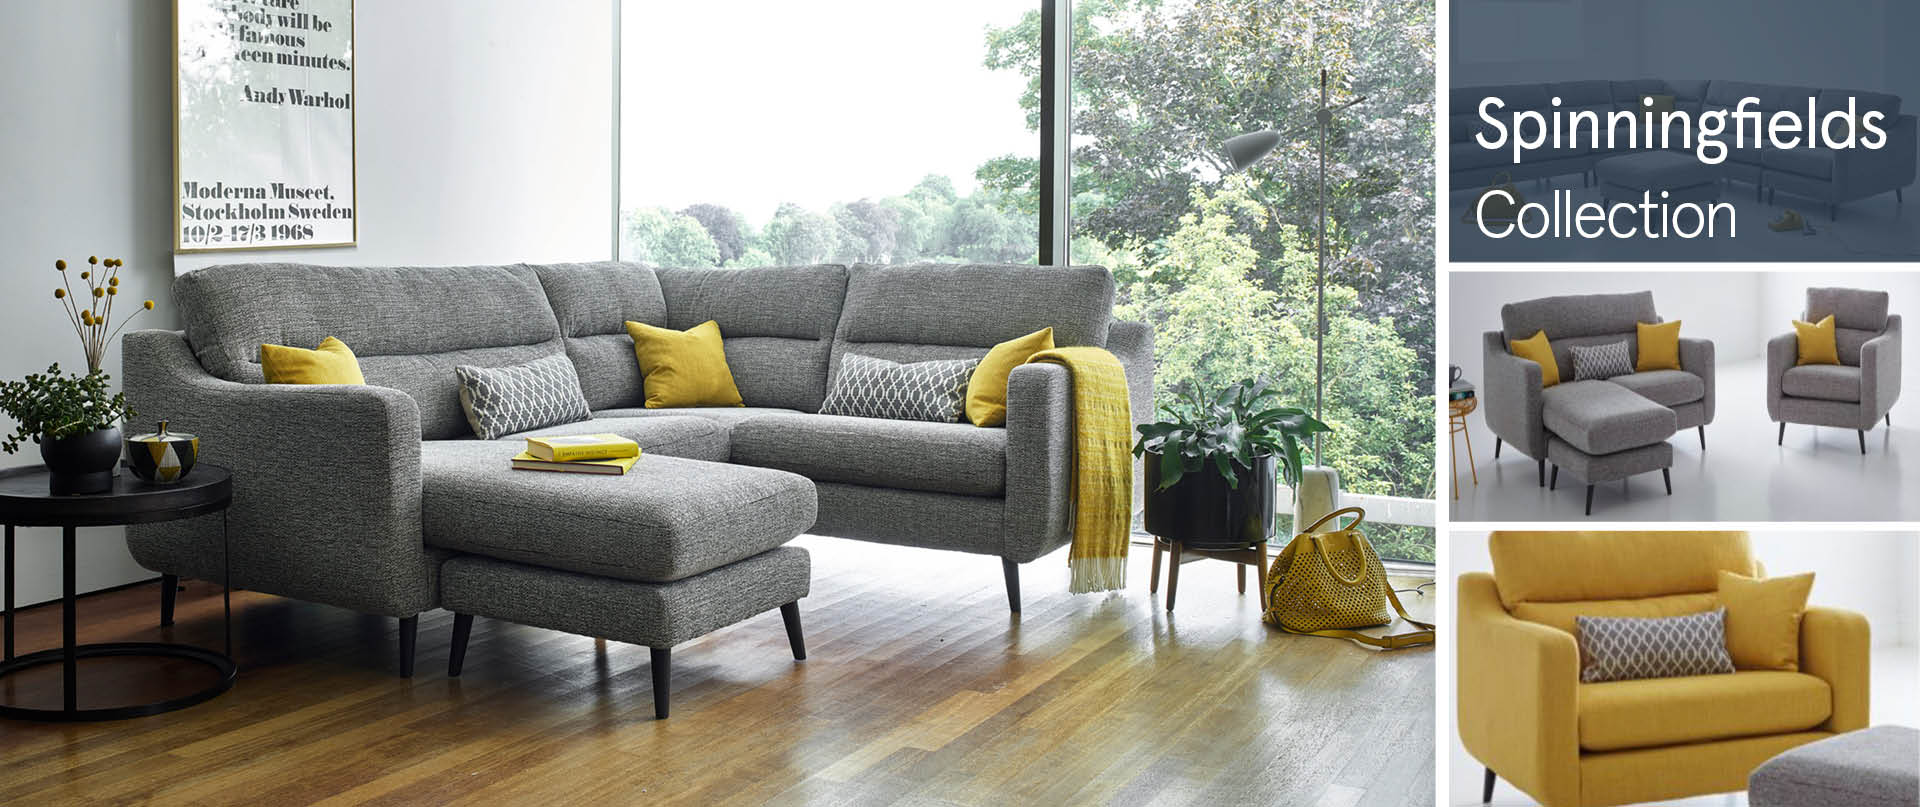 Spinningfields Fabric Sofas Ranges